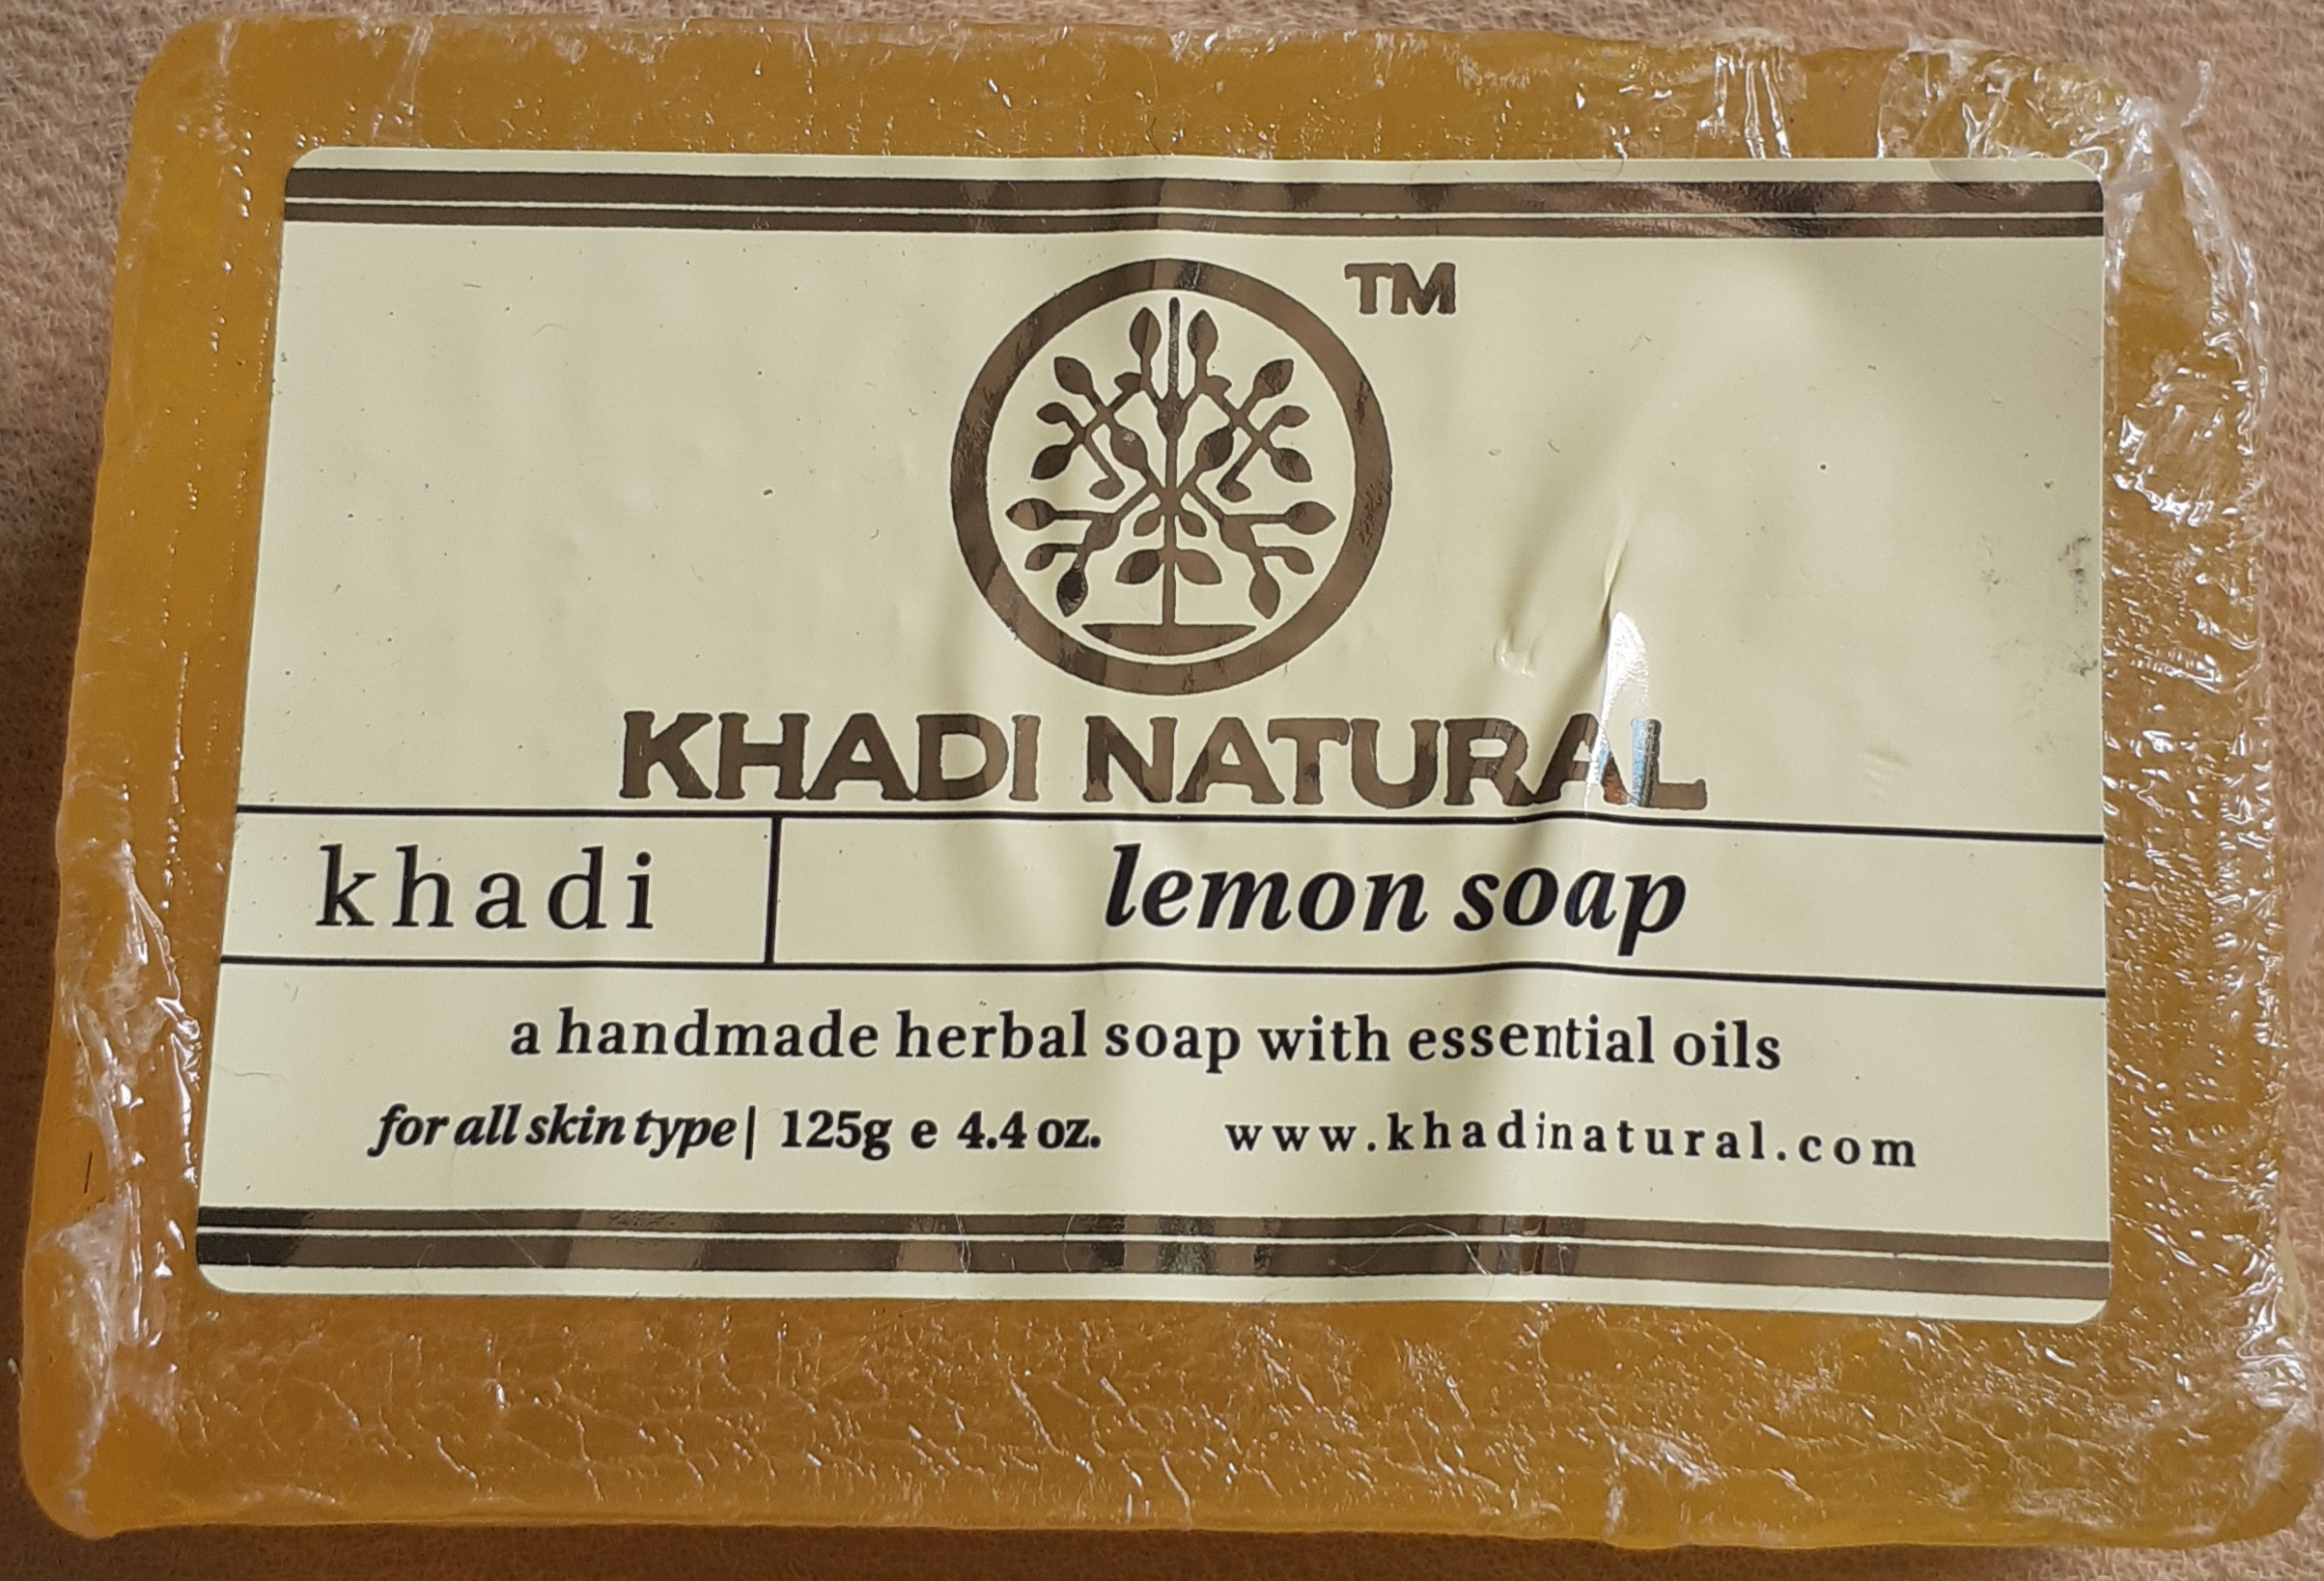 Khadi Natural Handmade Soap-Best Handmade Soap-By vaishali_0111